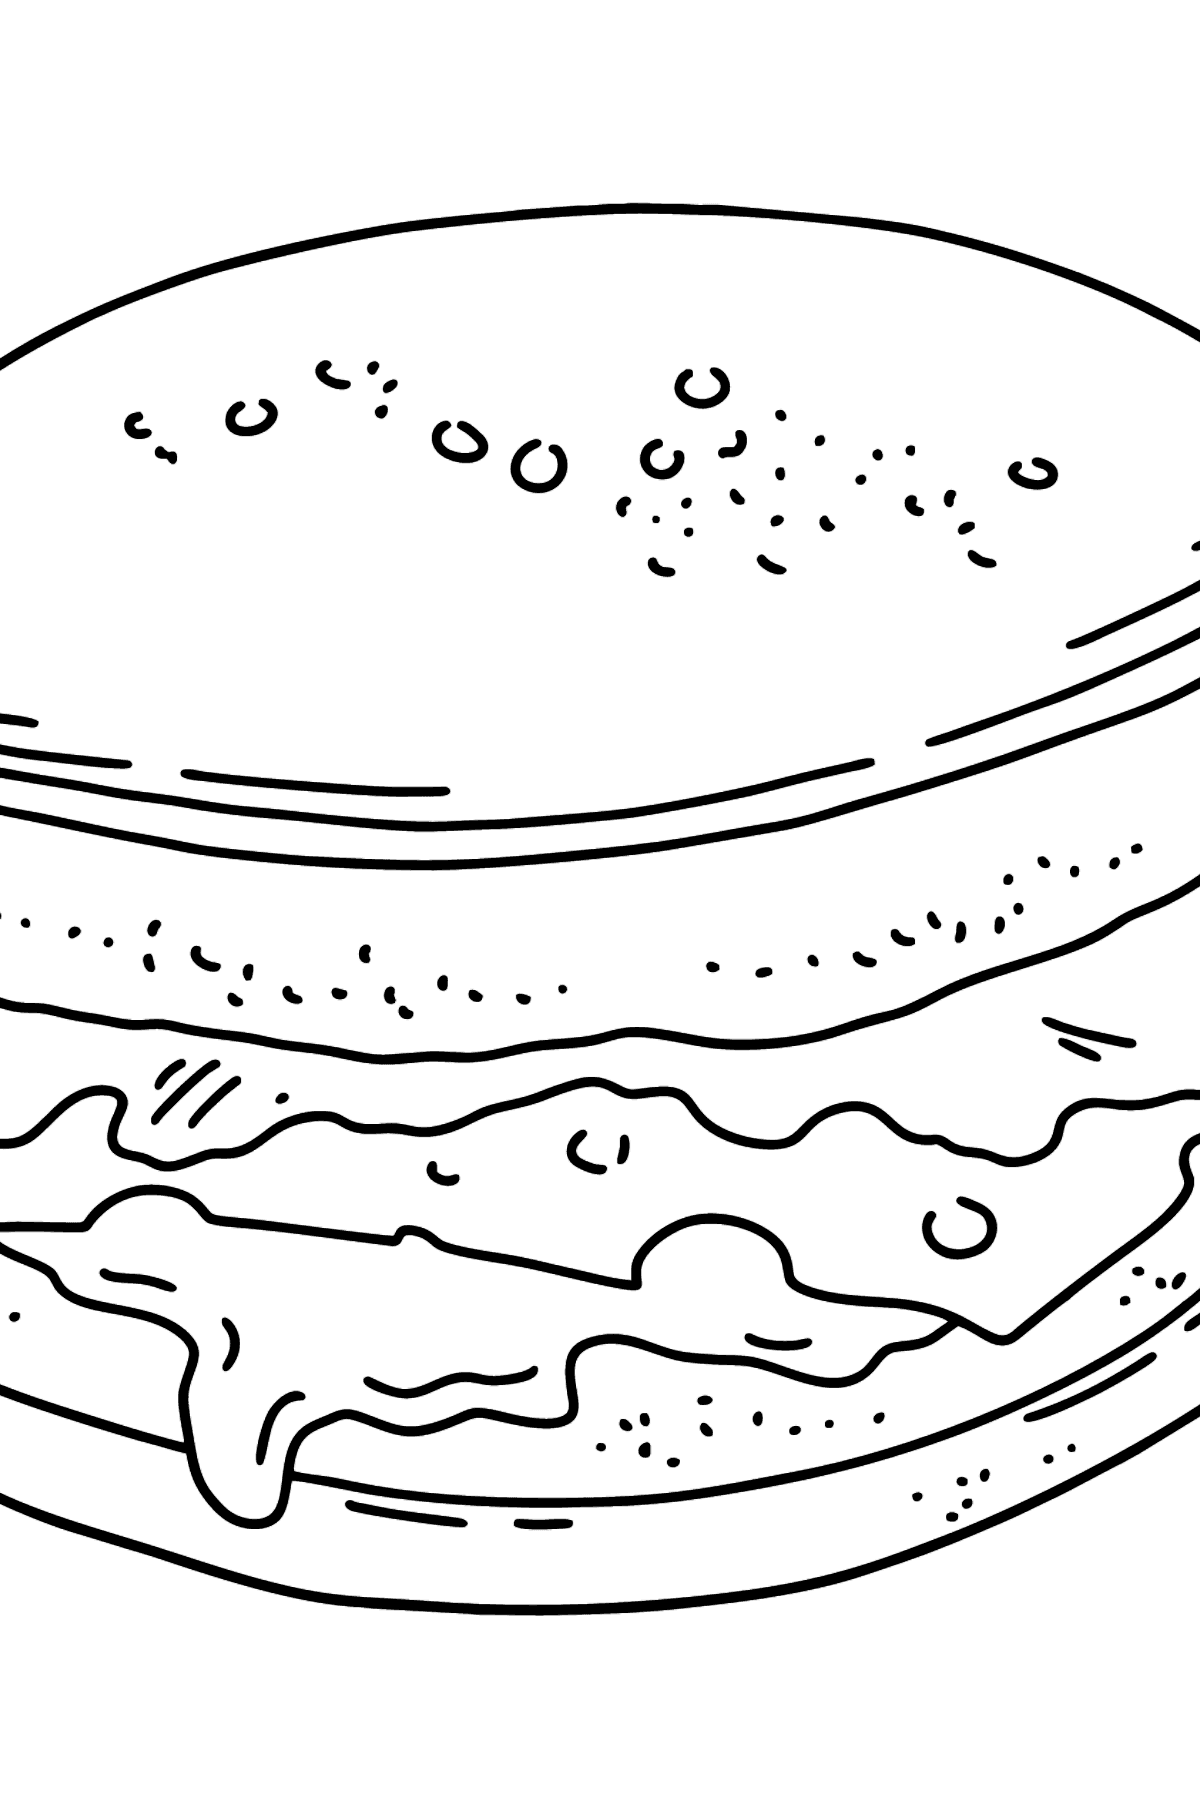 Hamburger coloring page - Coloring Pages for Kids